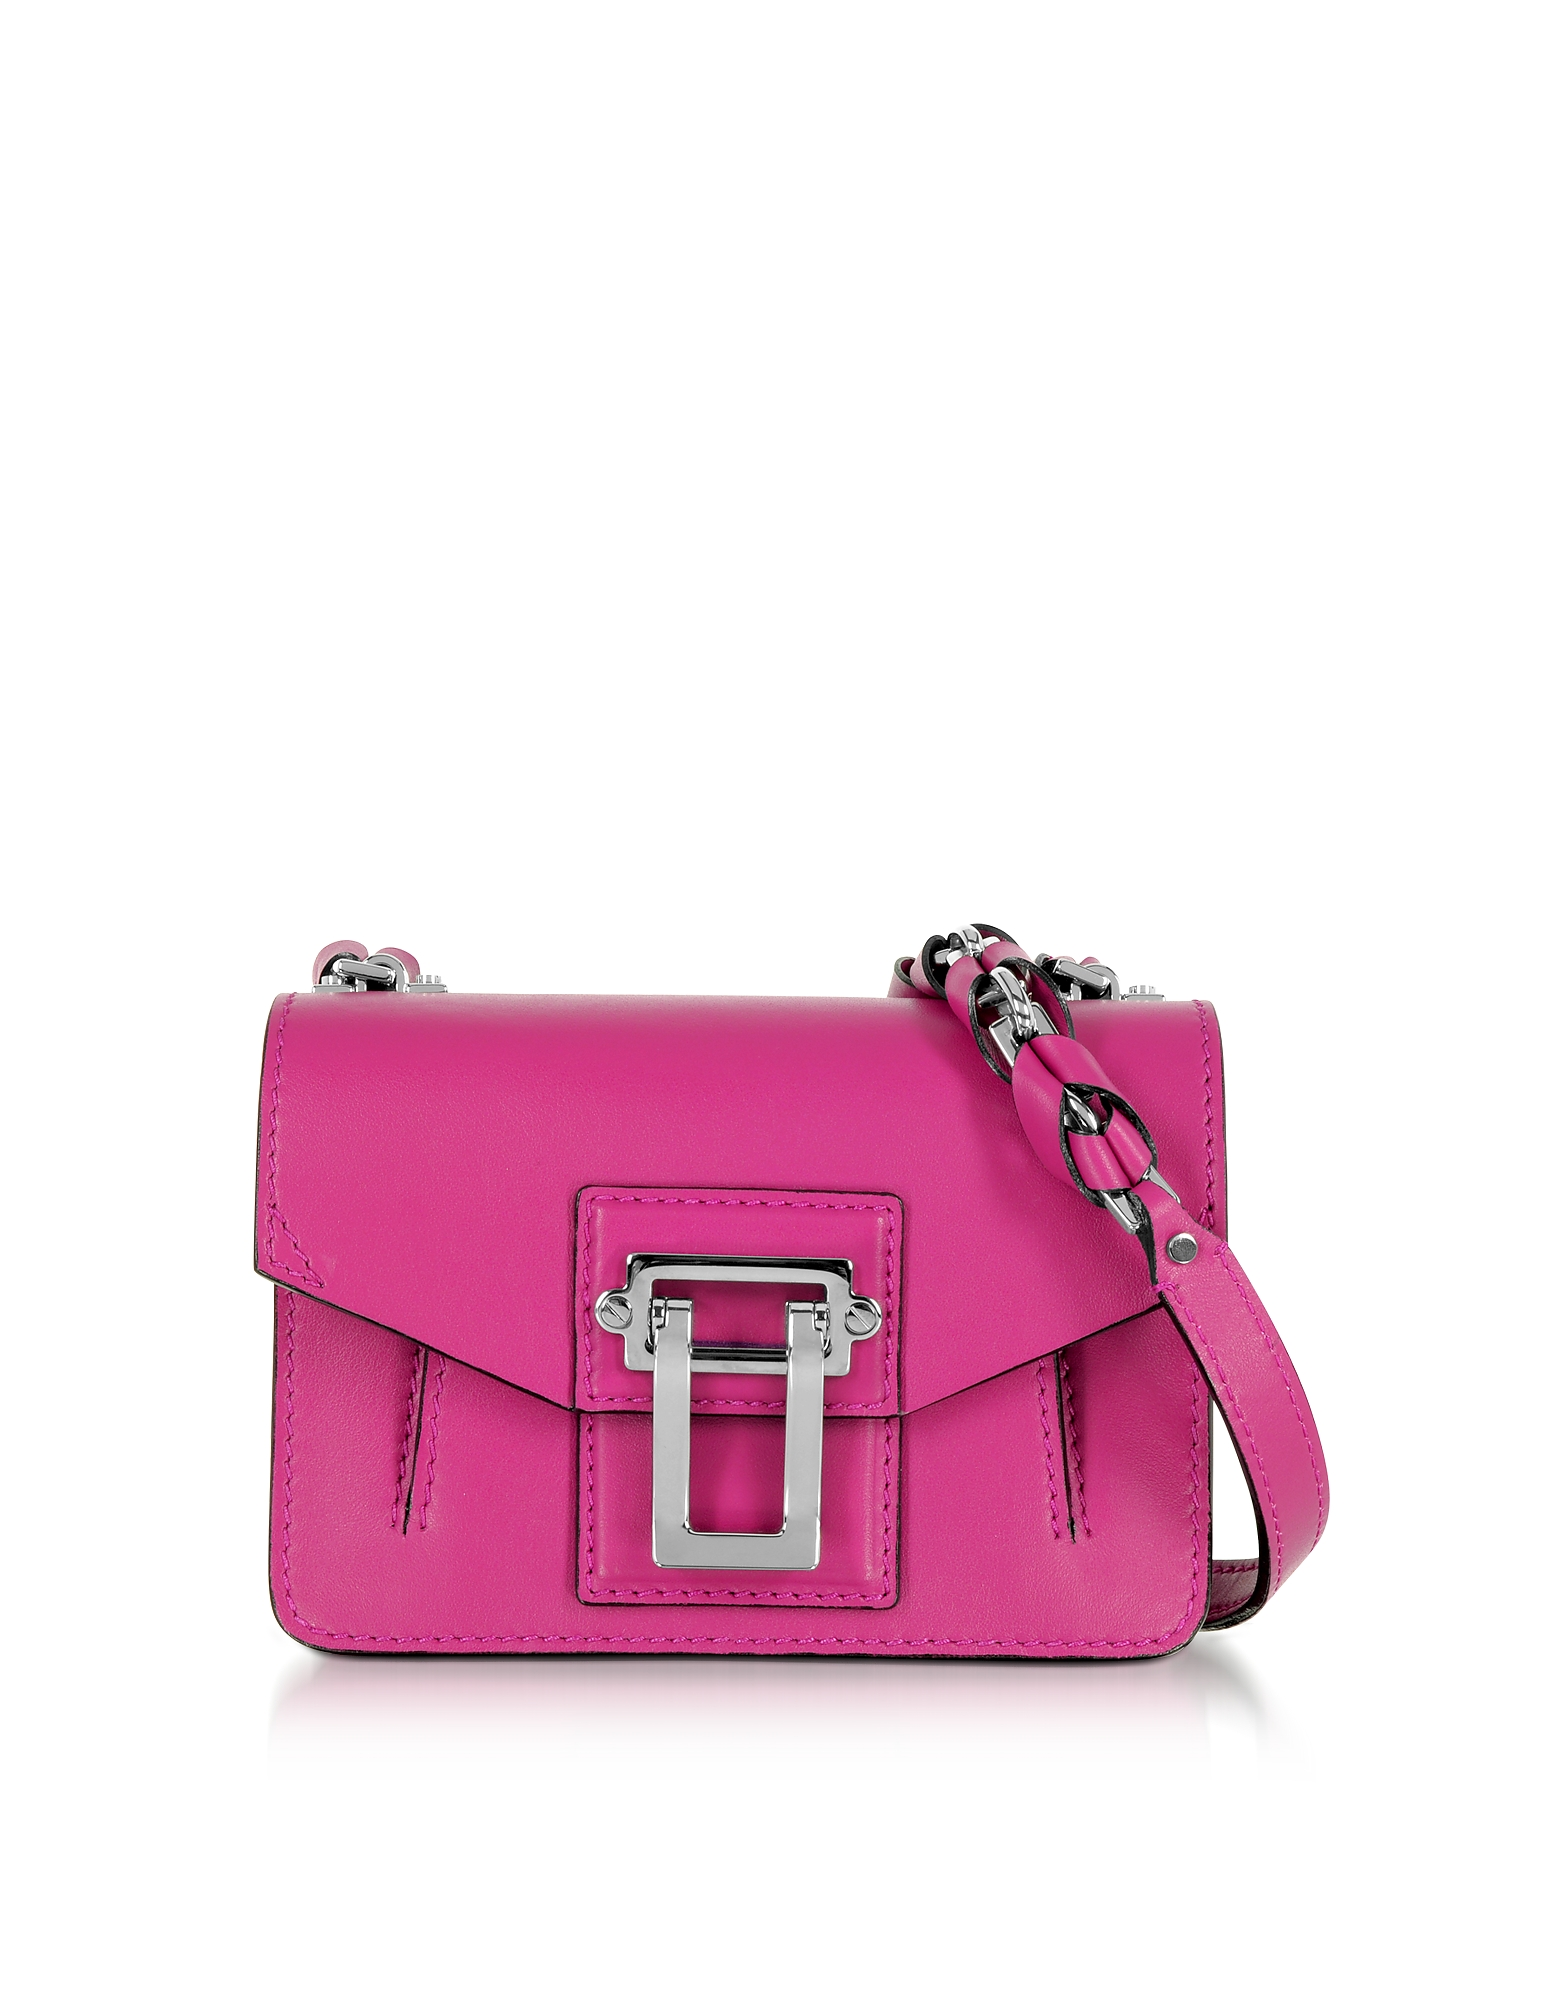 factory authentic 100% satisfaction guarantee search for authentic Proenza Schouler - Hava Chain Peony Smooth Leather Crossbody Bag